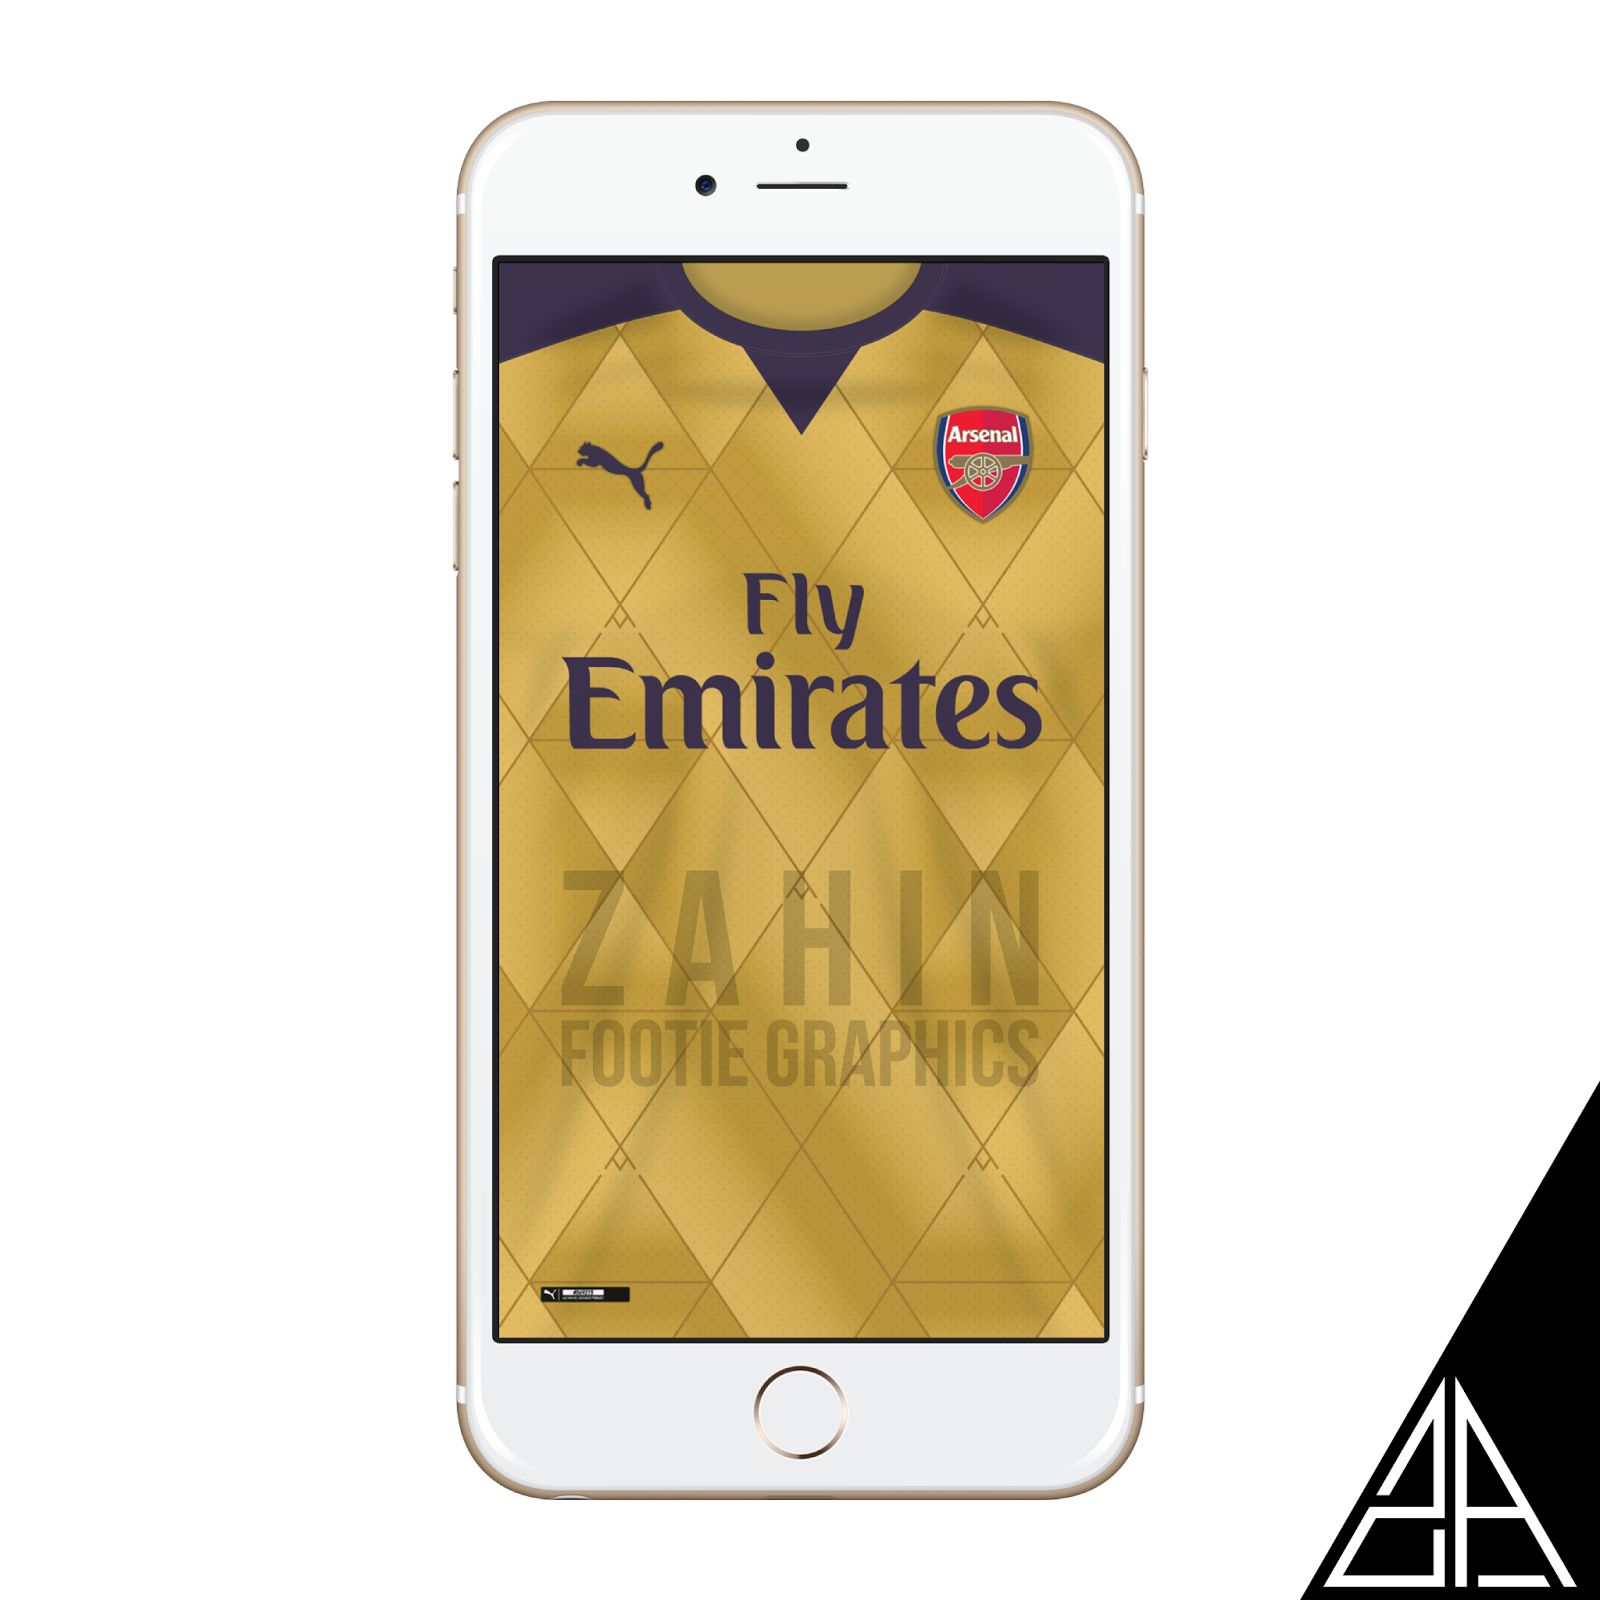 512x512 galatasaray home kit pictures free download - Link 2 Arsenal Home Wallpaper 2015 16 Download Link